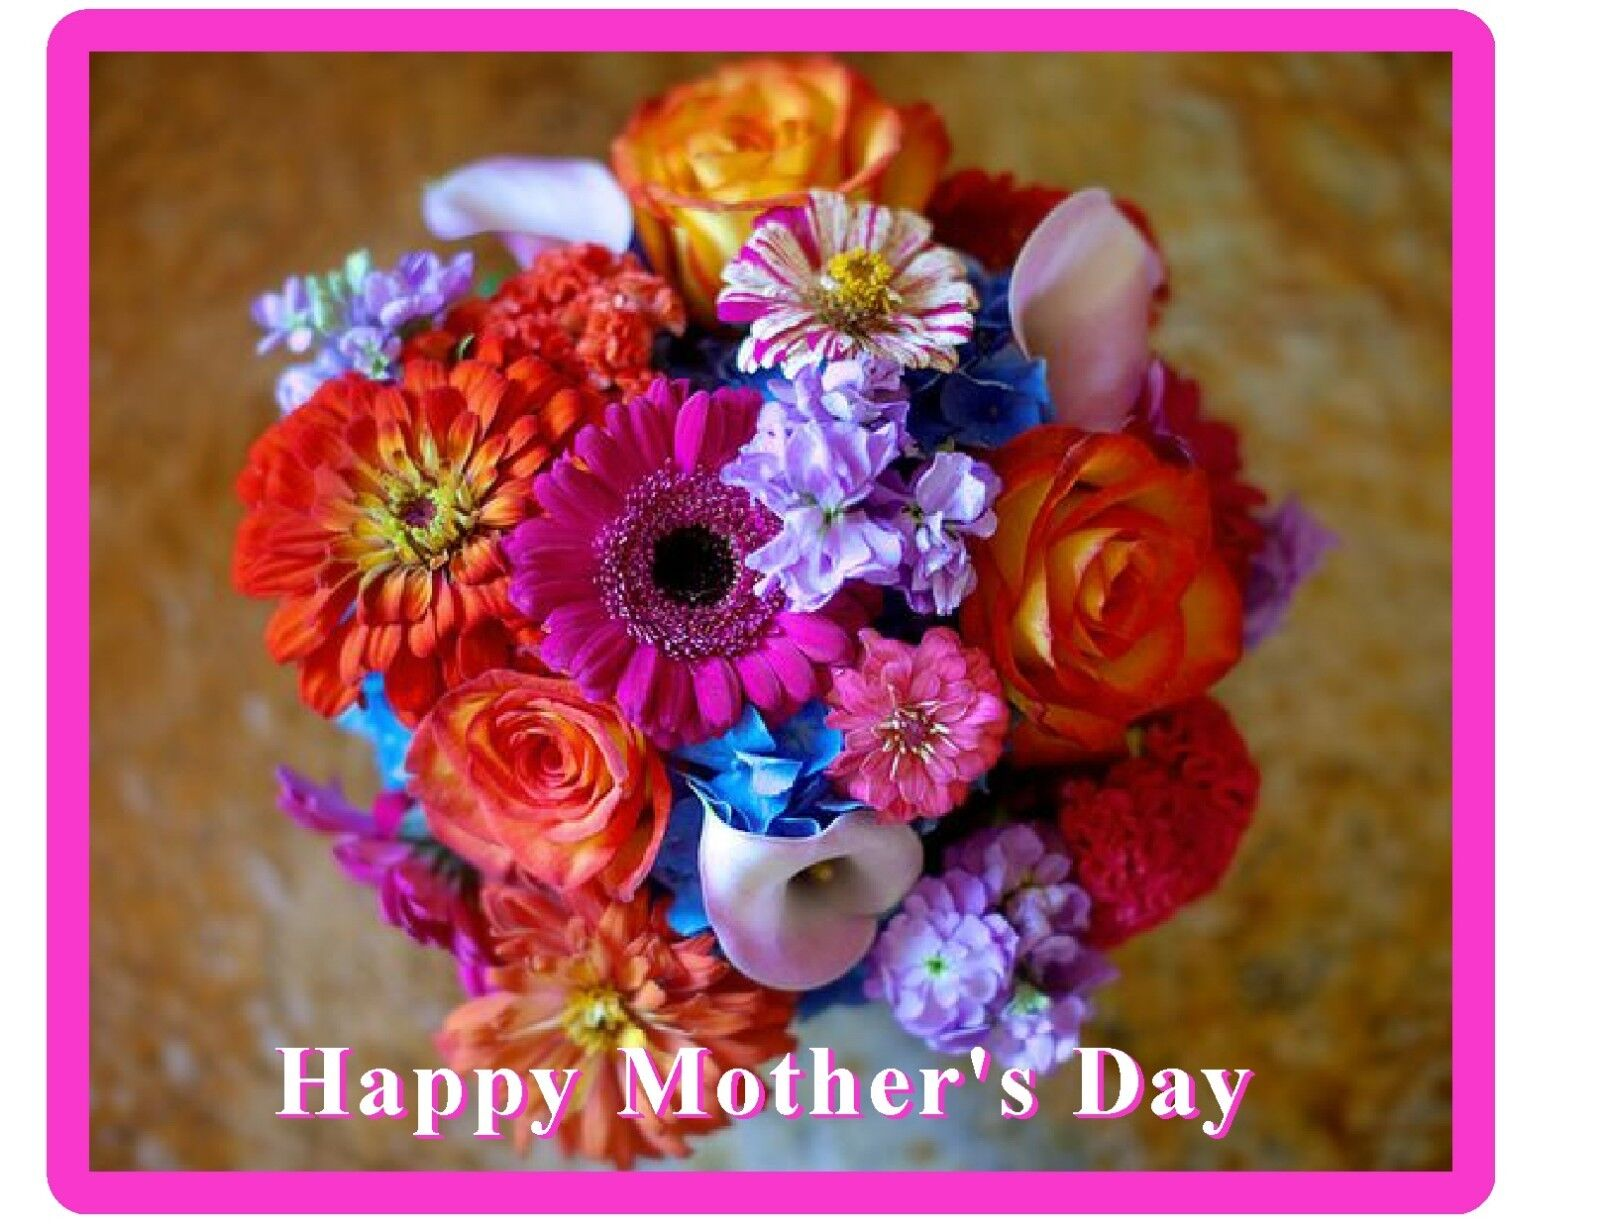 Mothers Day Happy Flowers Art Greetings Gift Card Cs1547 For Sale Online Ebay